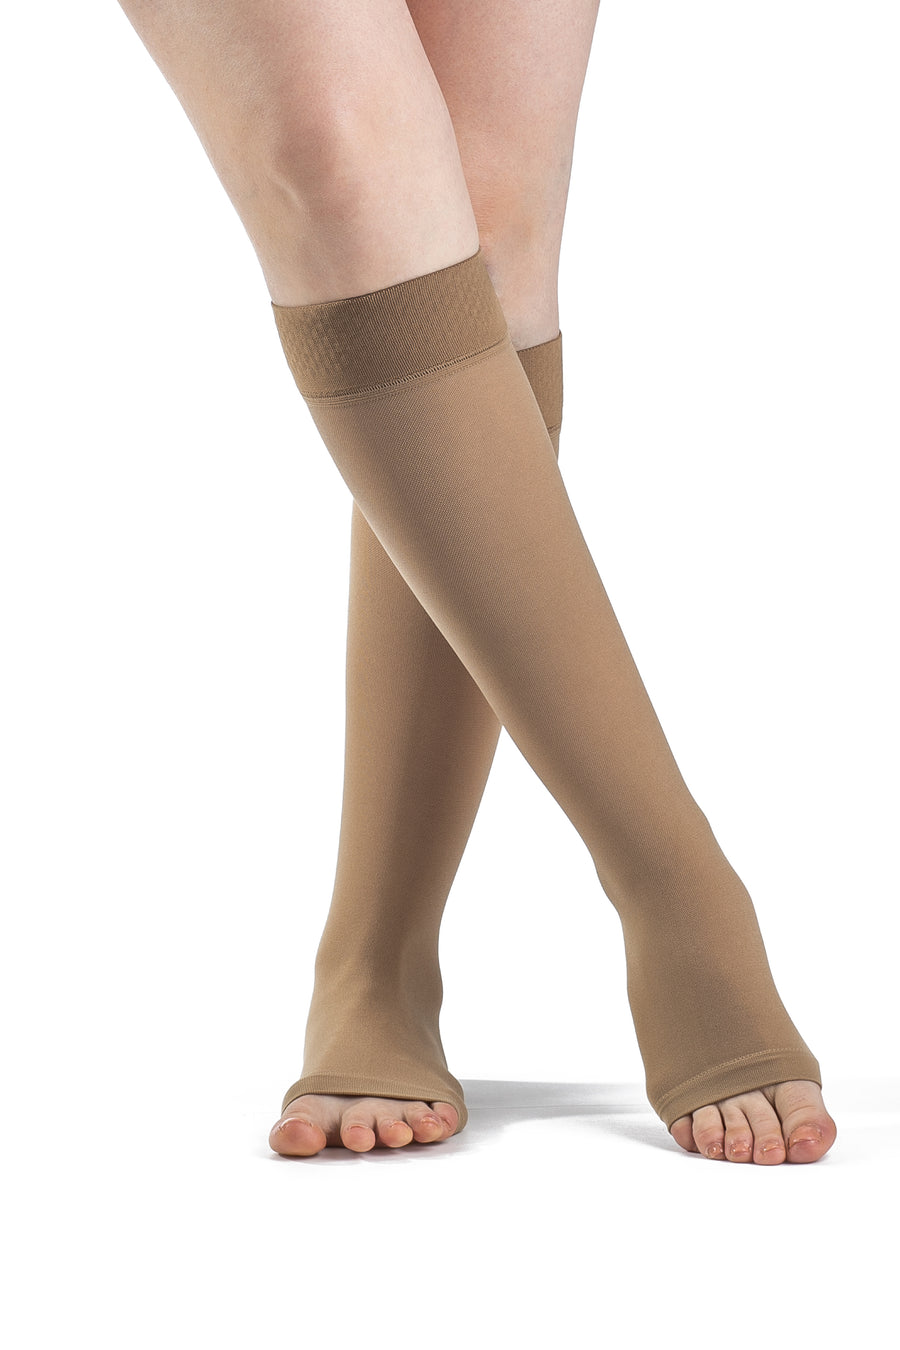 SIGVARIS SELECT COMFORT 860 Compression  with Grip-Top 30-40mmHg